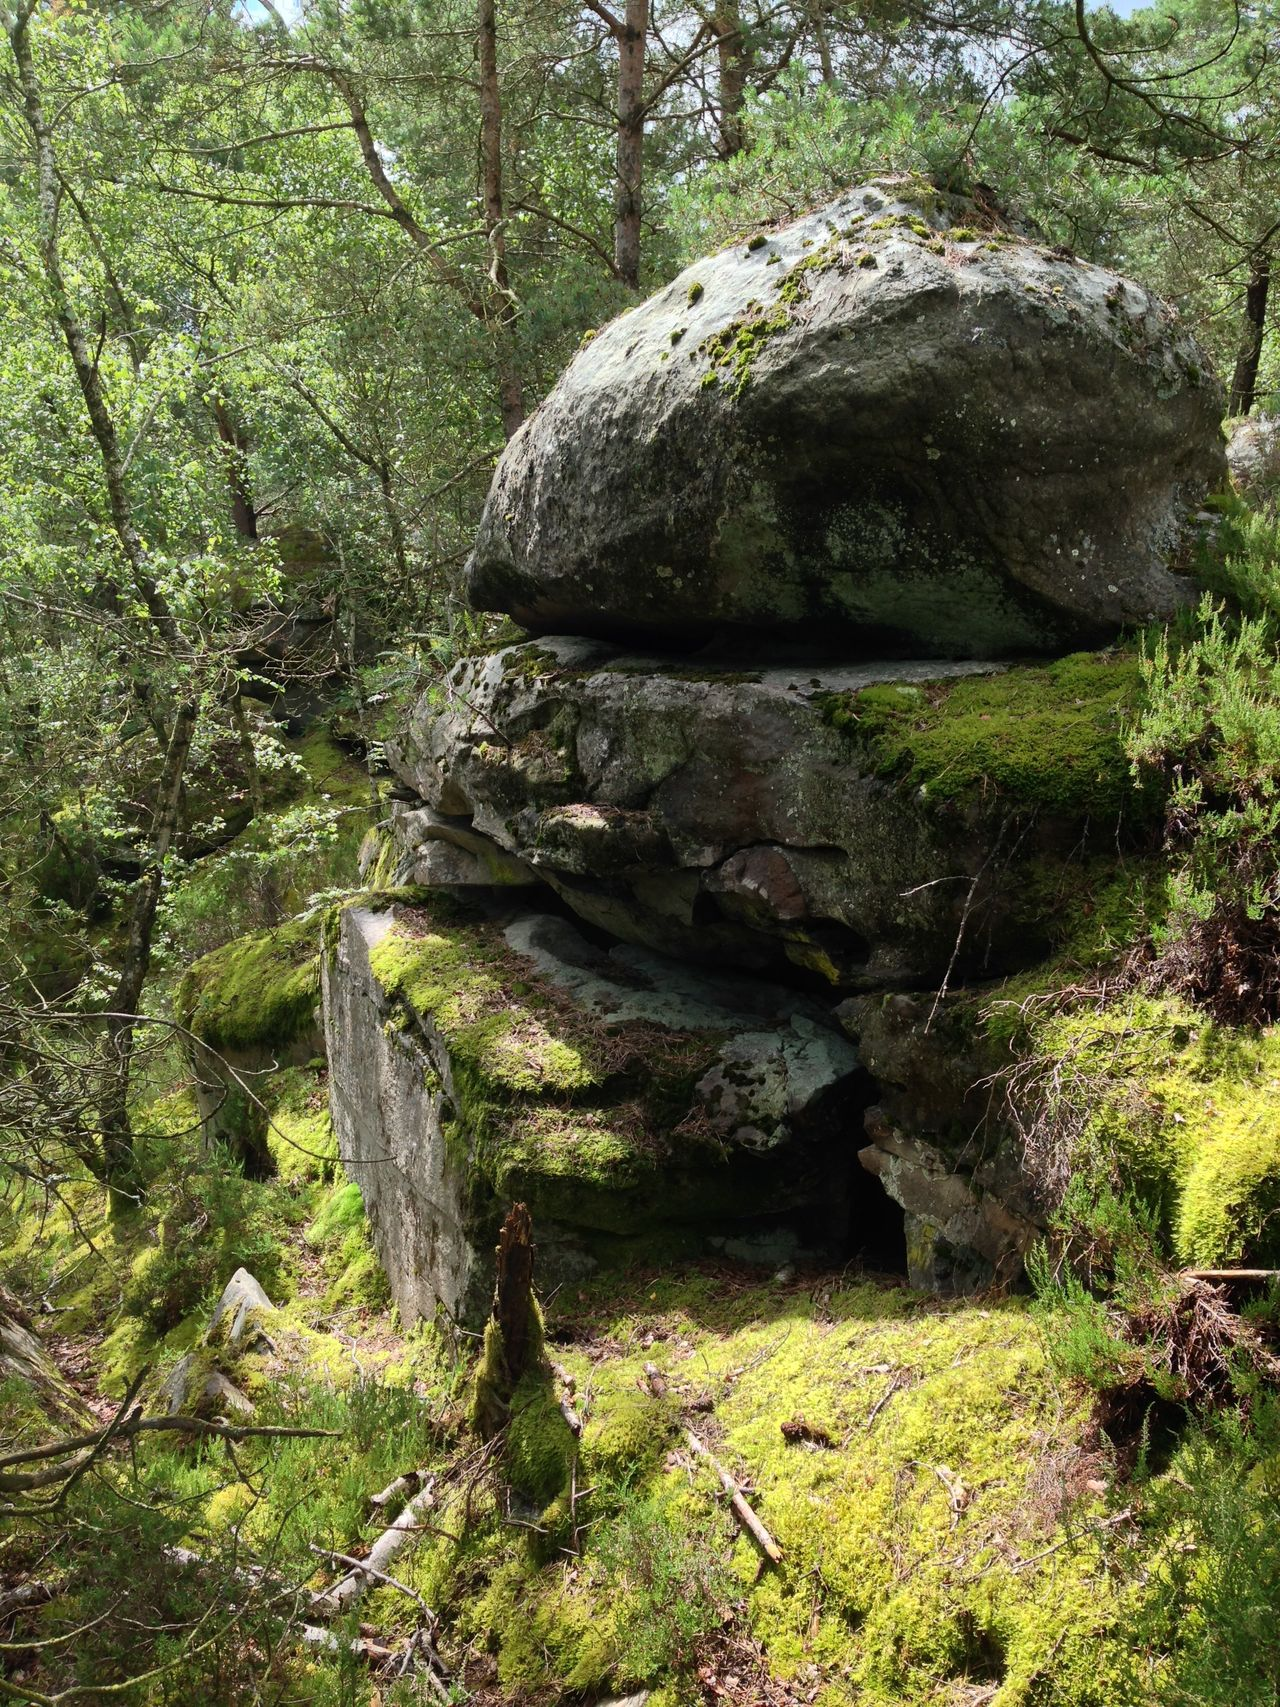 Rock - Object Nature Tranquility Forest Tree Day Outdoors No People Green Color Beauty In Nature Moss Tranquil Scene Growth Scenics